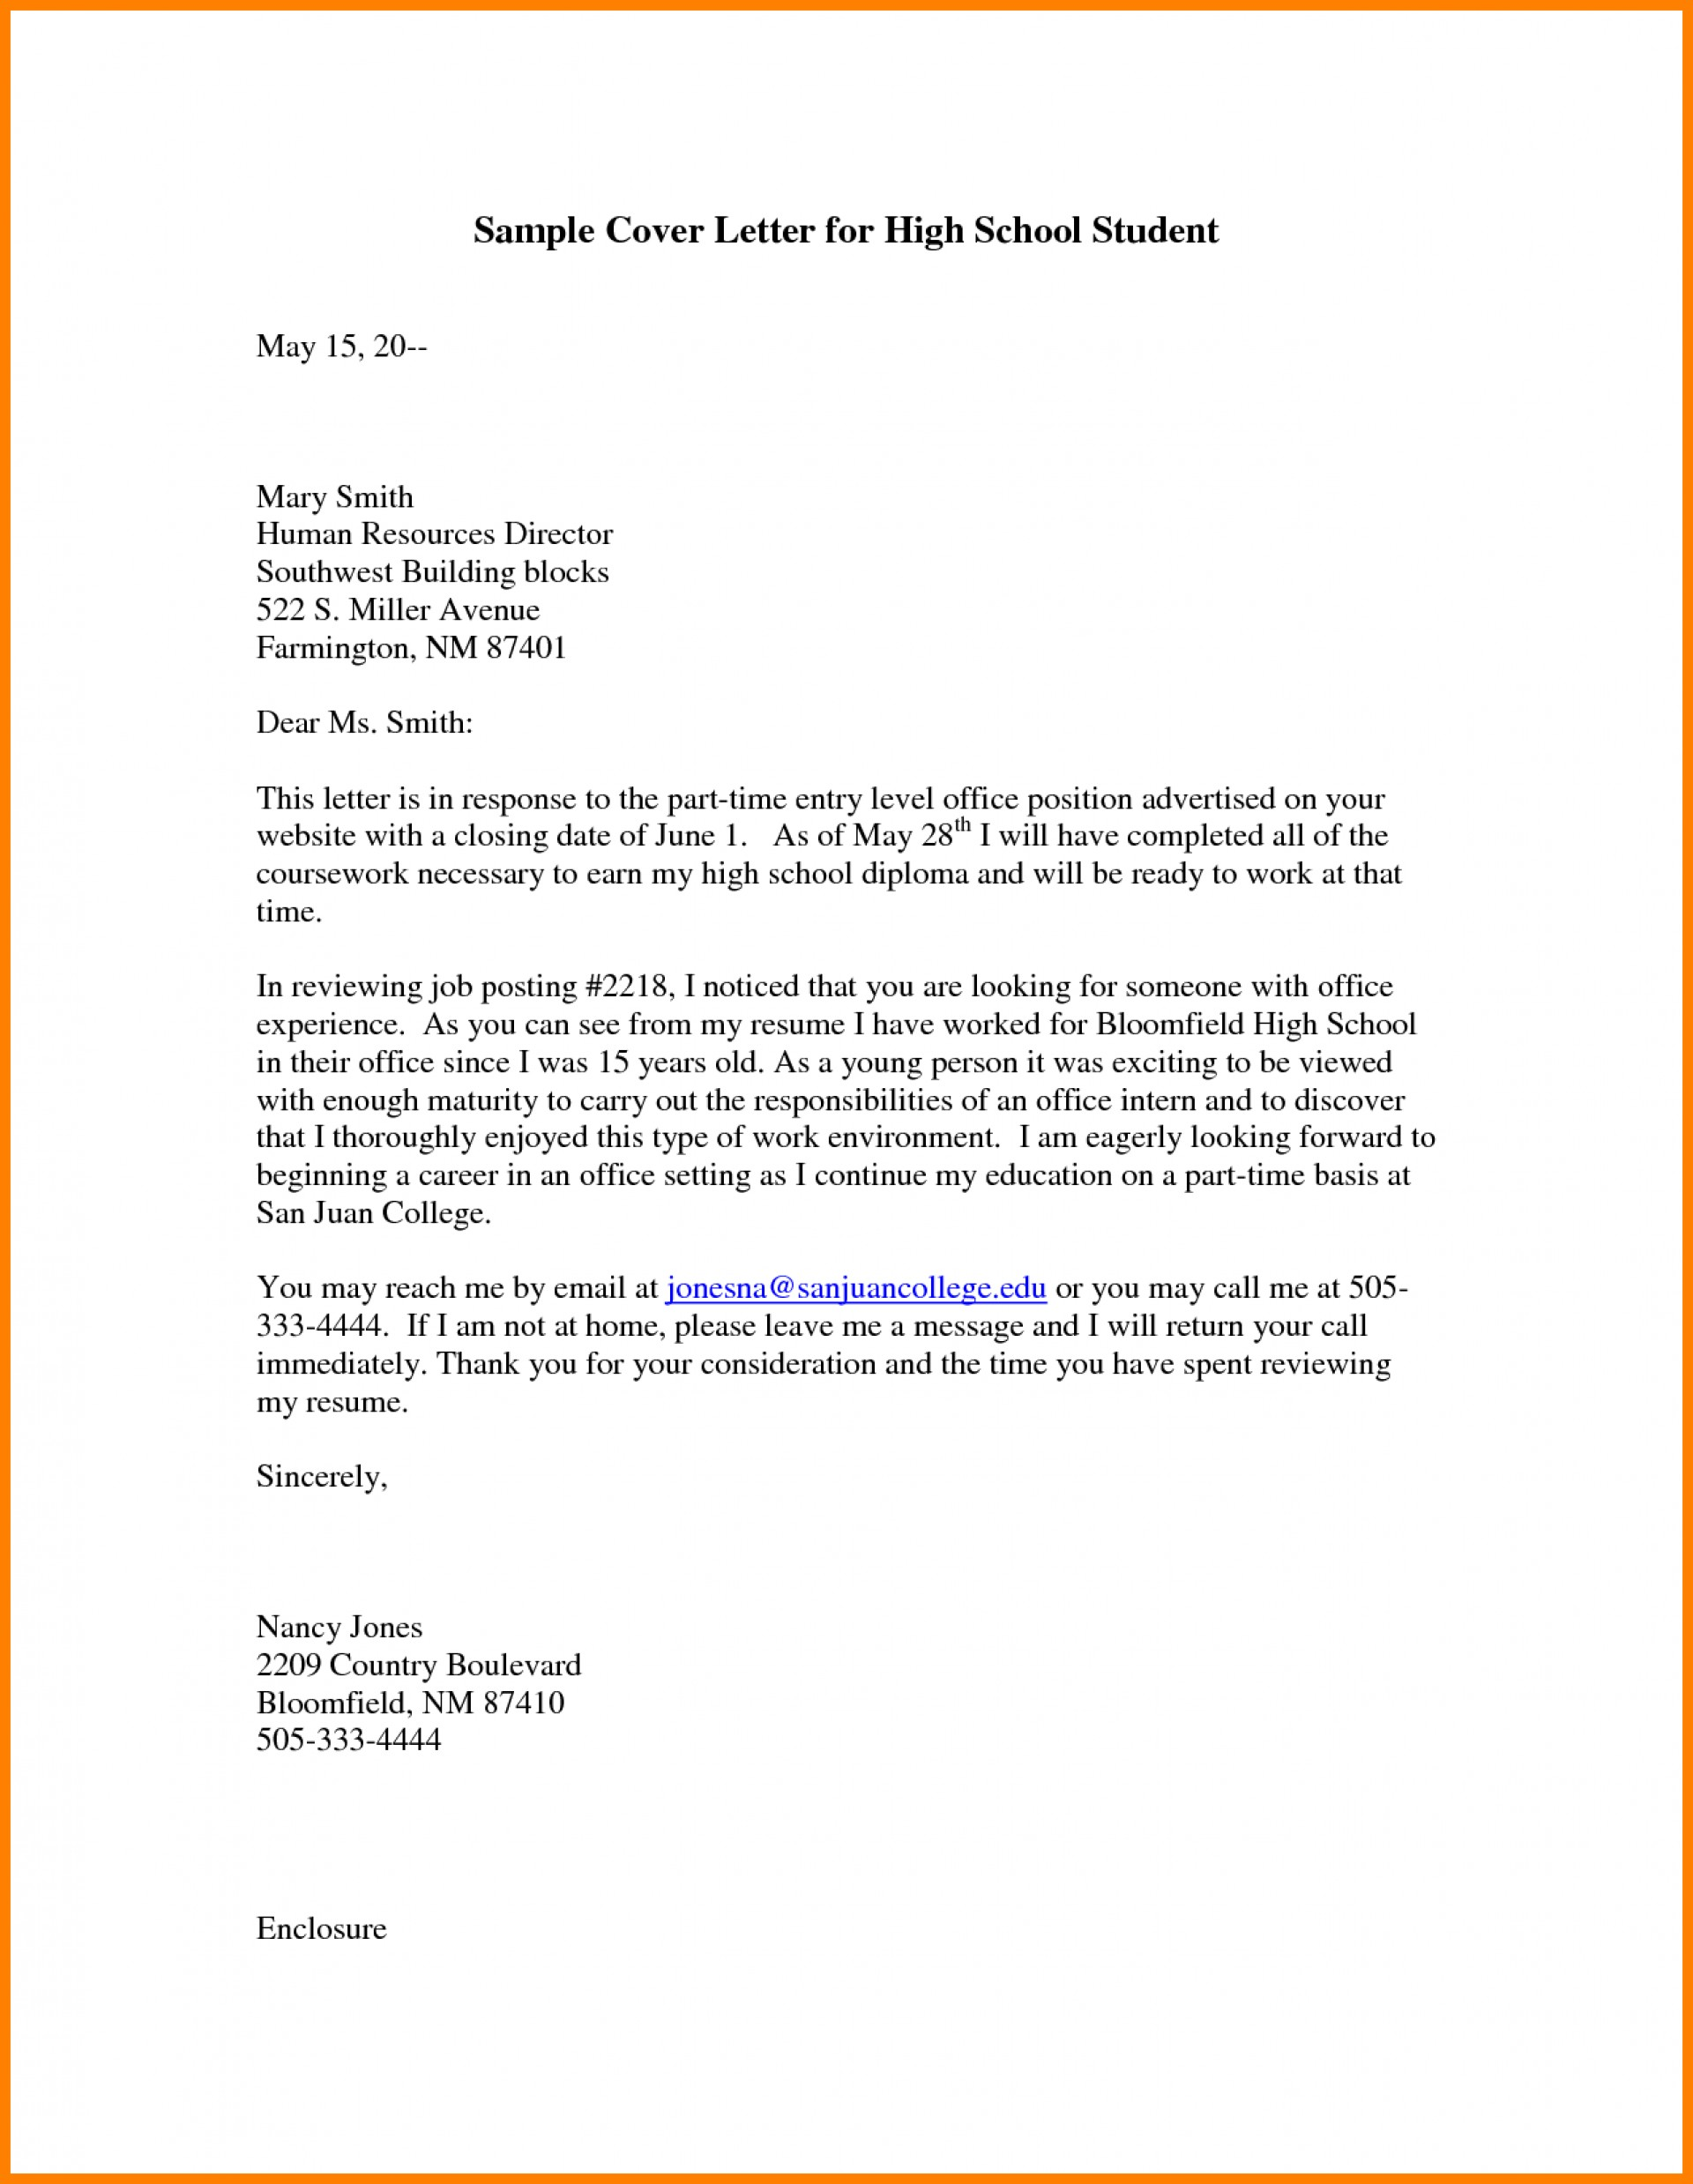 011 Letter For School Sample Essay Example Why Nyu Exceptional Supplement Examples College Confidential 1920